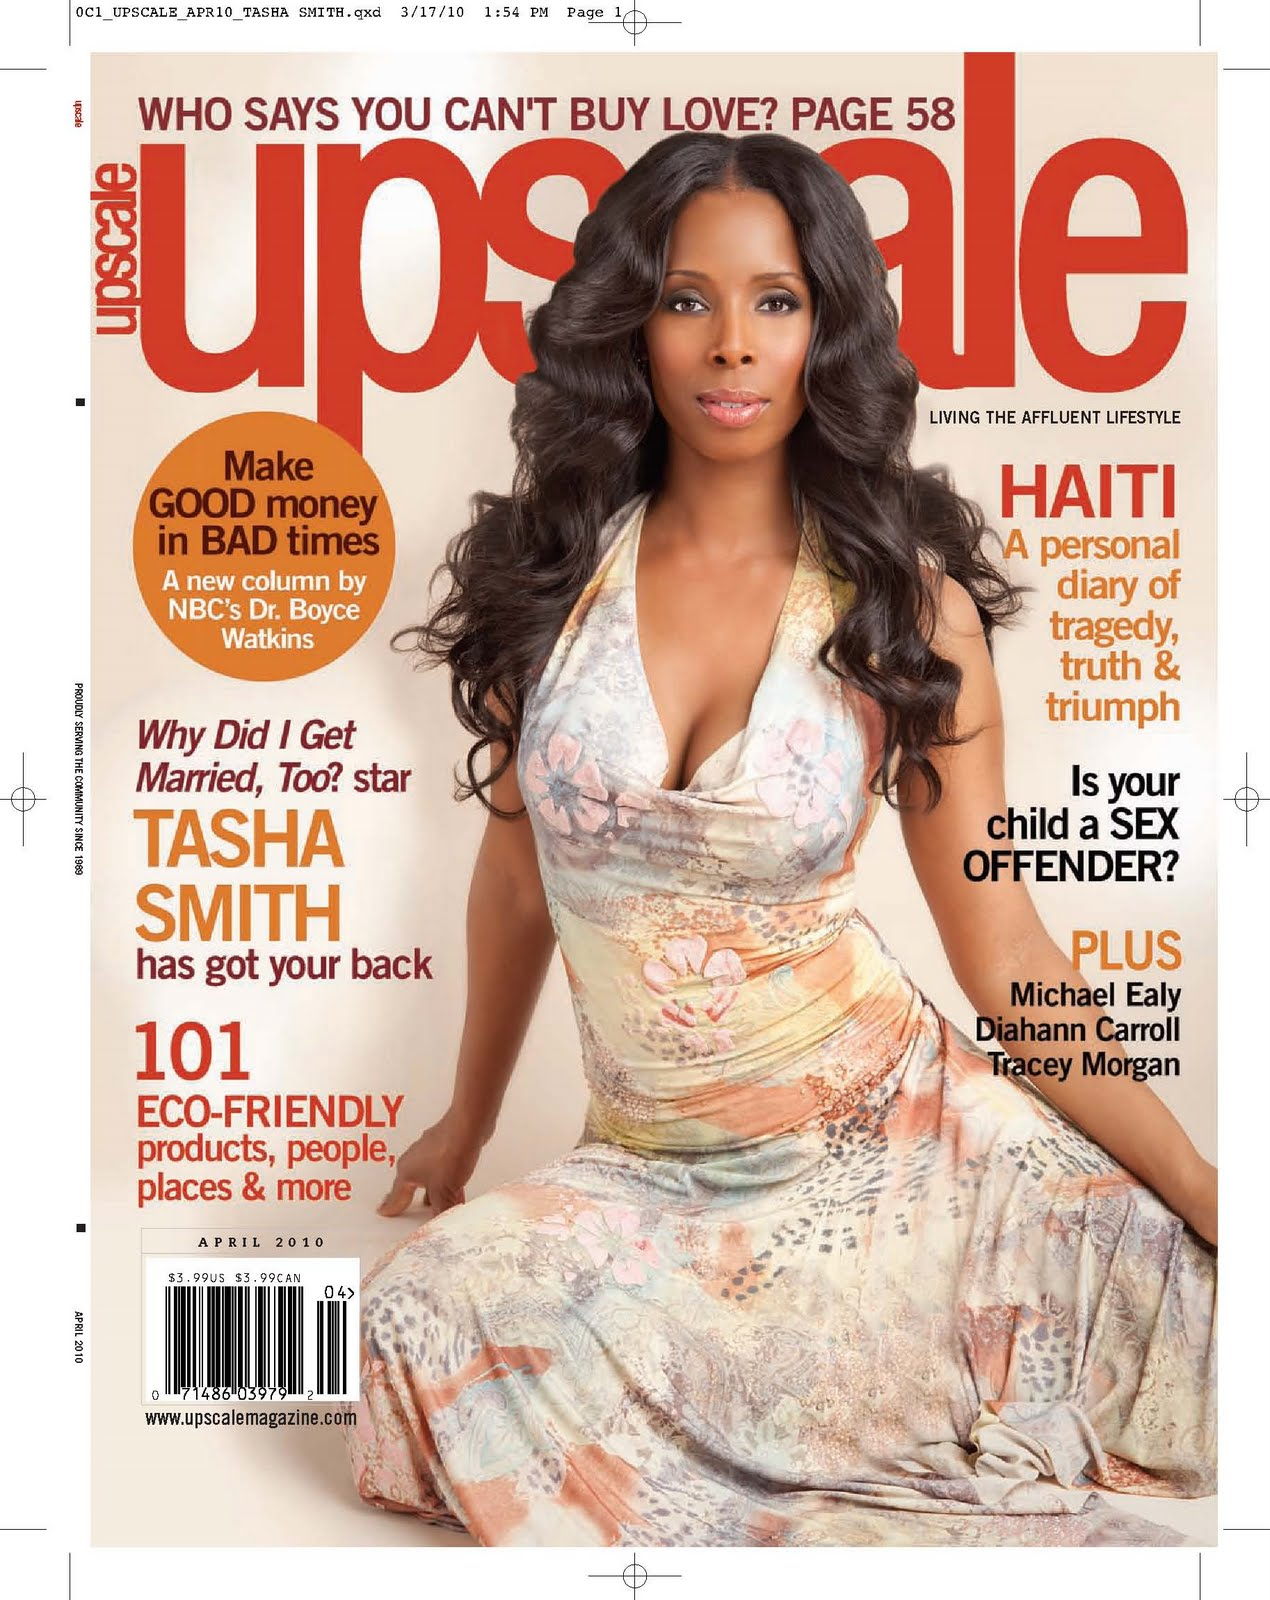 UPSCALE magazine is seeking a single female between the ages of 30 and 40 to ...